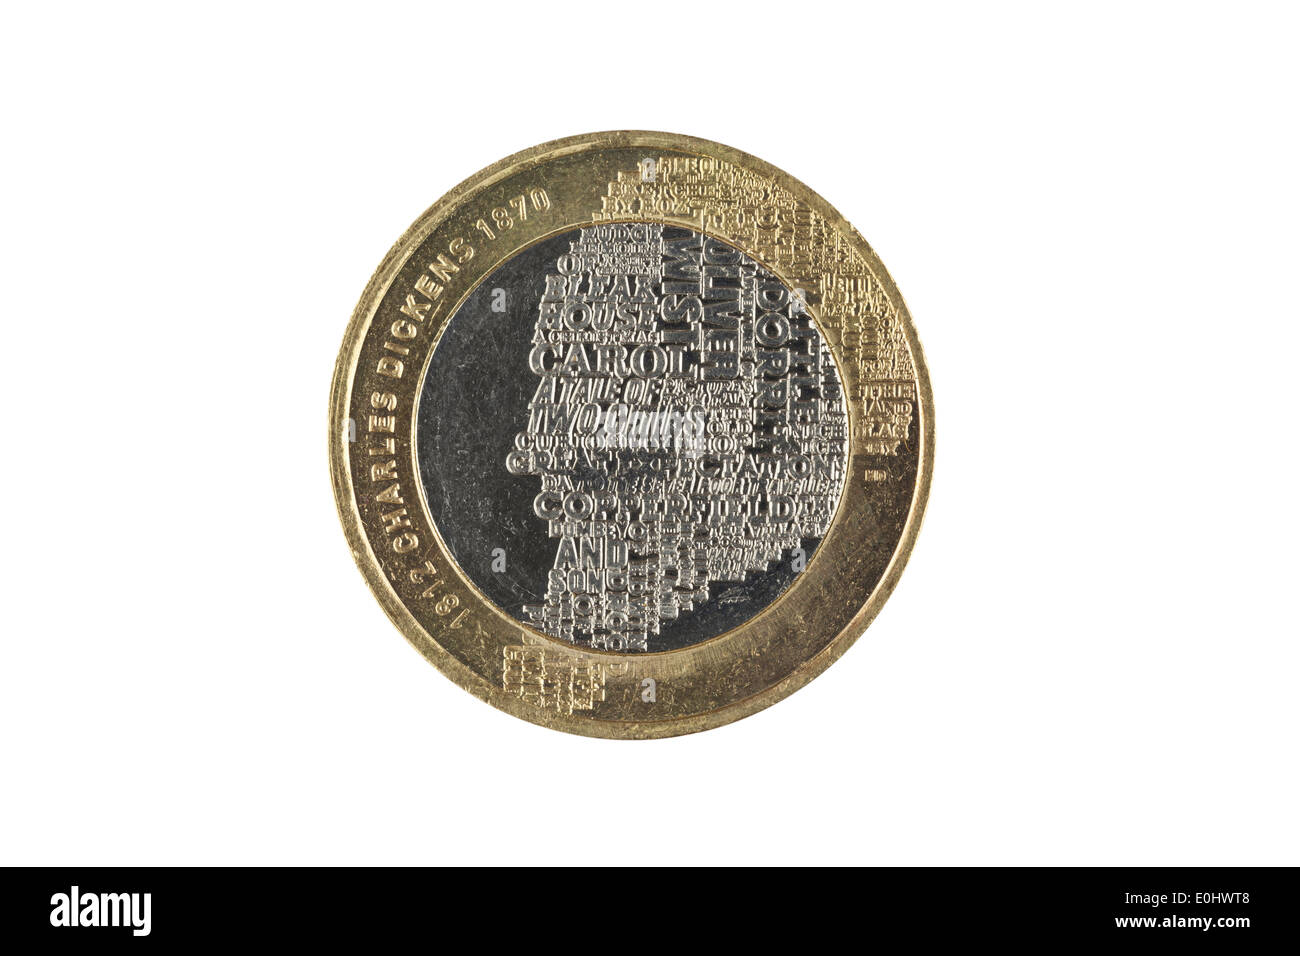 A special edition two pound coin marking the 200th anniversary of the birth of Charles Dickens - Stock Image